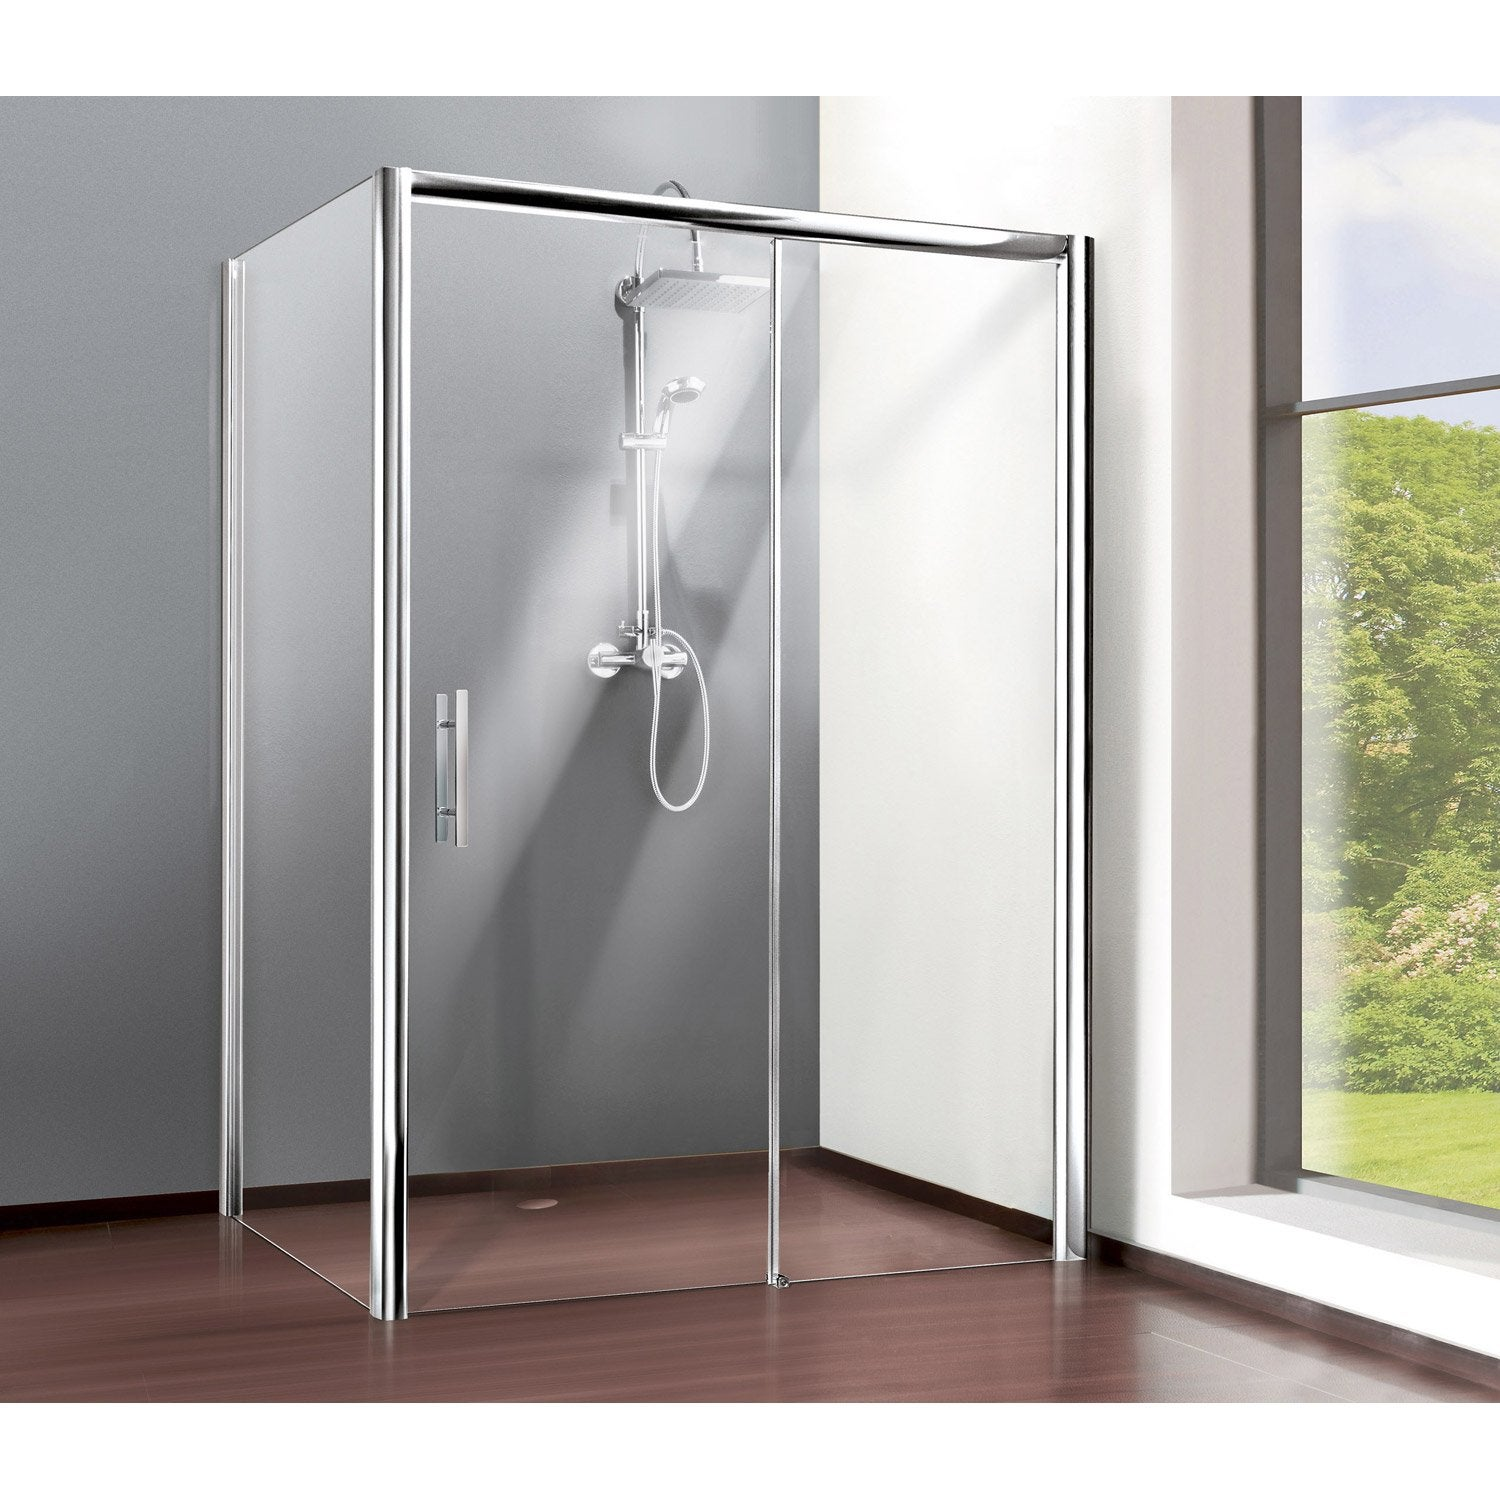 Porte de douche coulissante 97 101 cm profil chrom for Portes de douche